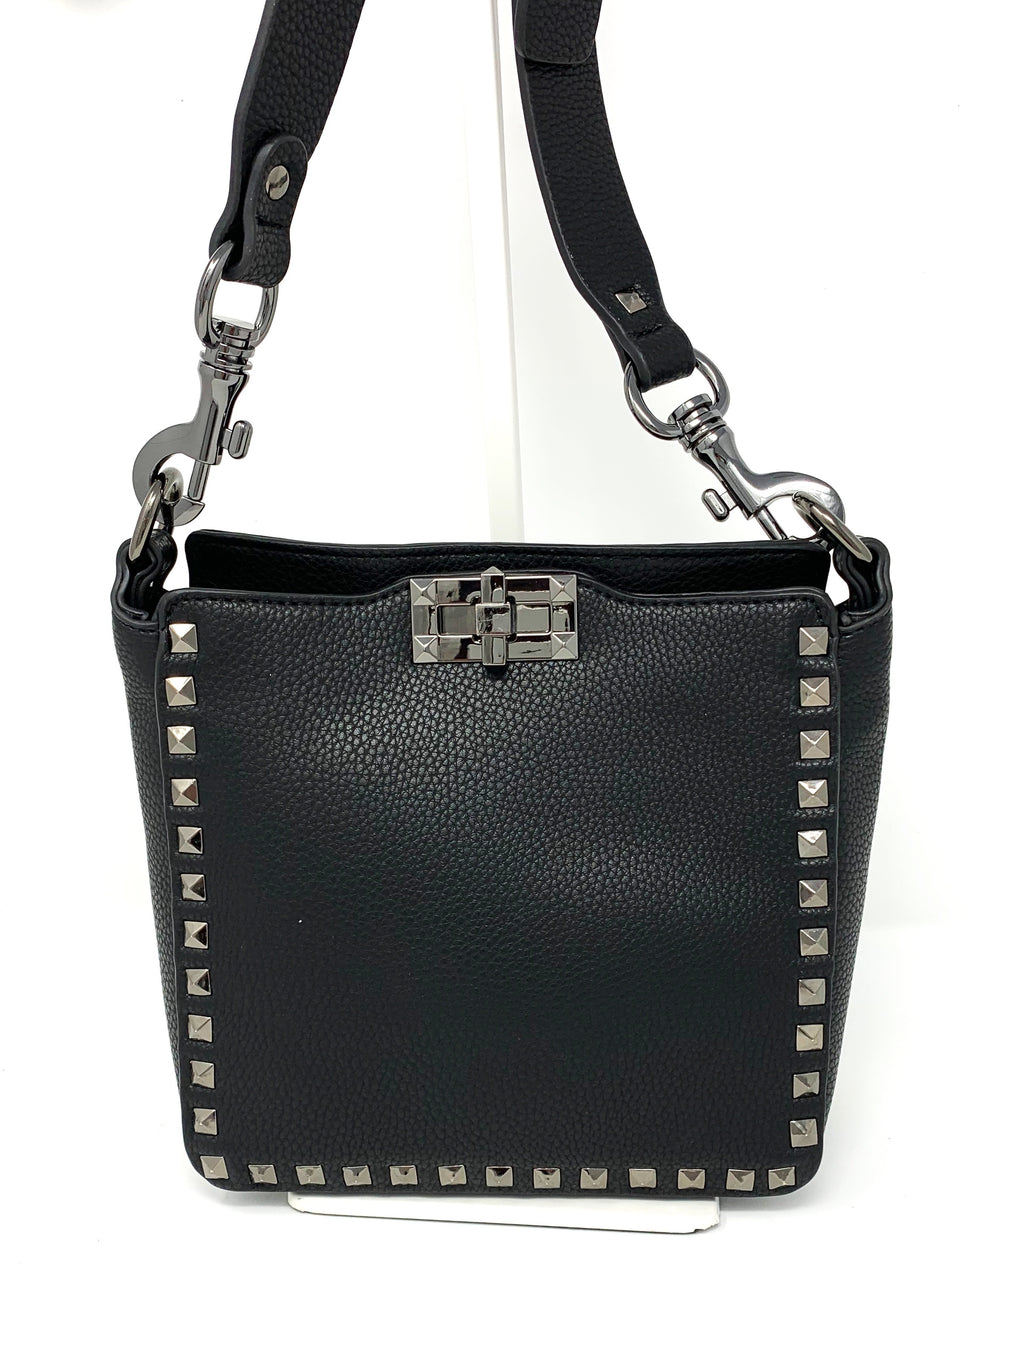 Small Studded Crossbody Bag in Black with Gunmetal Studs